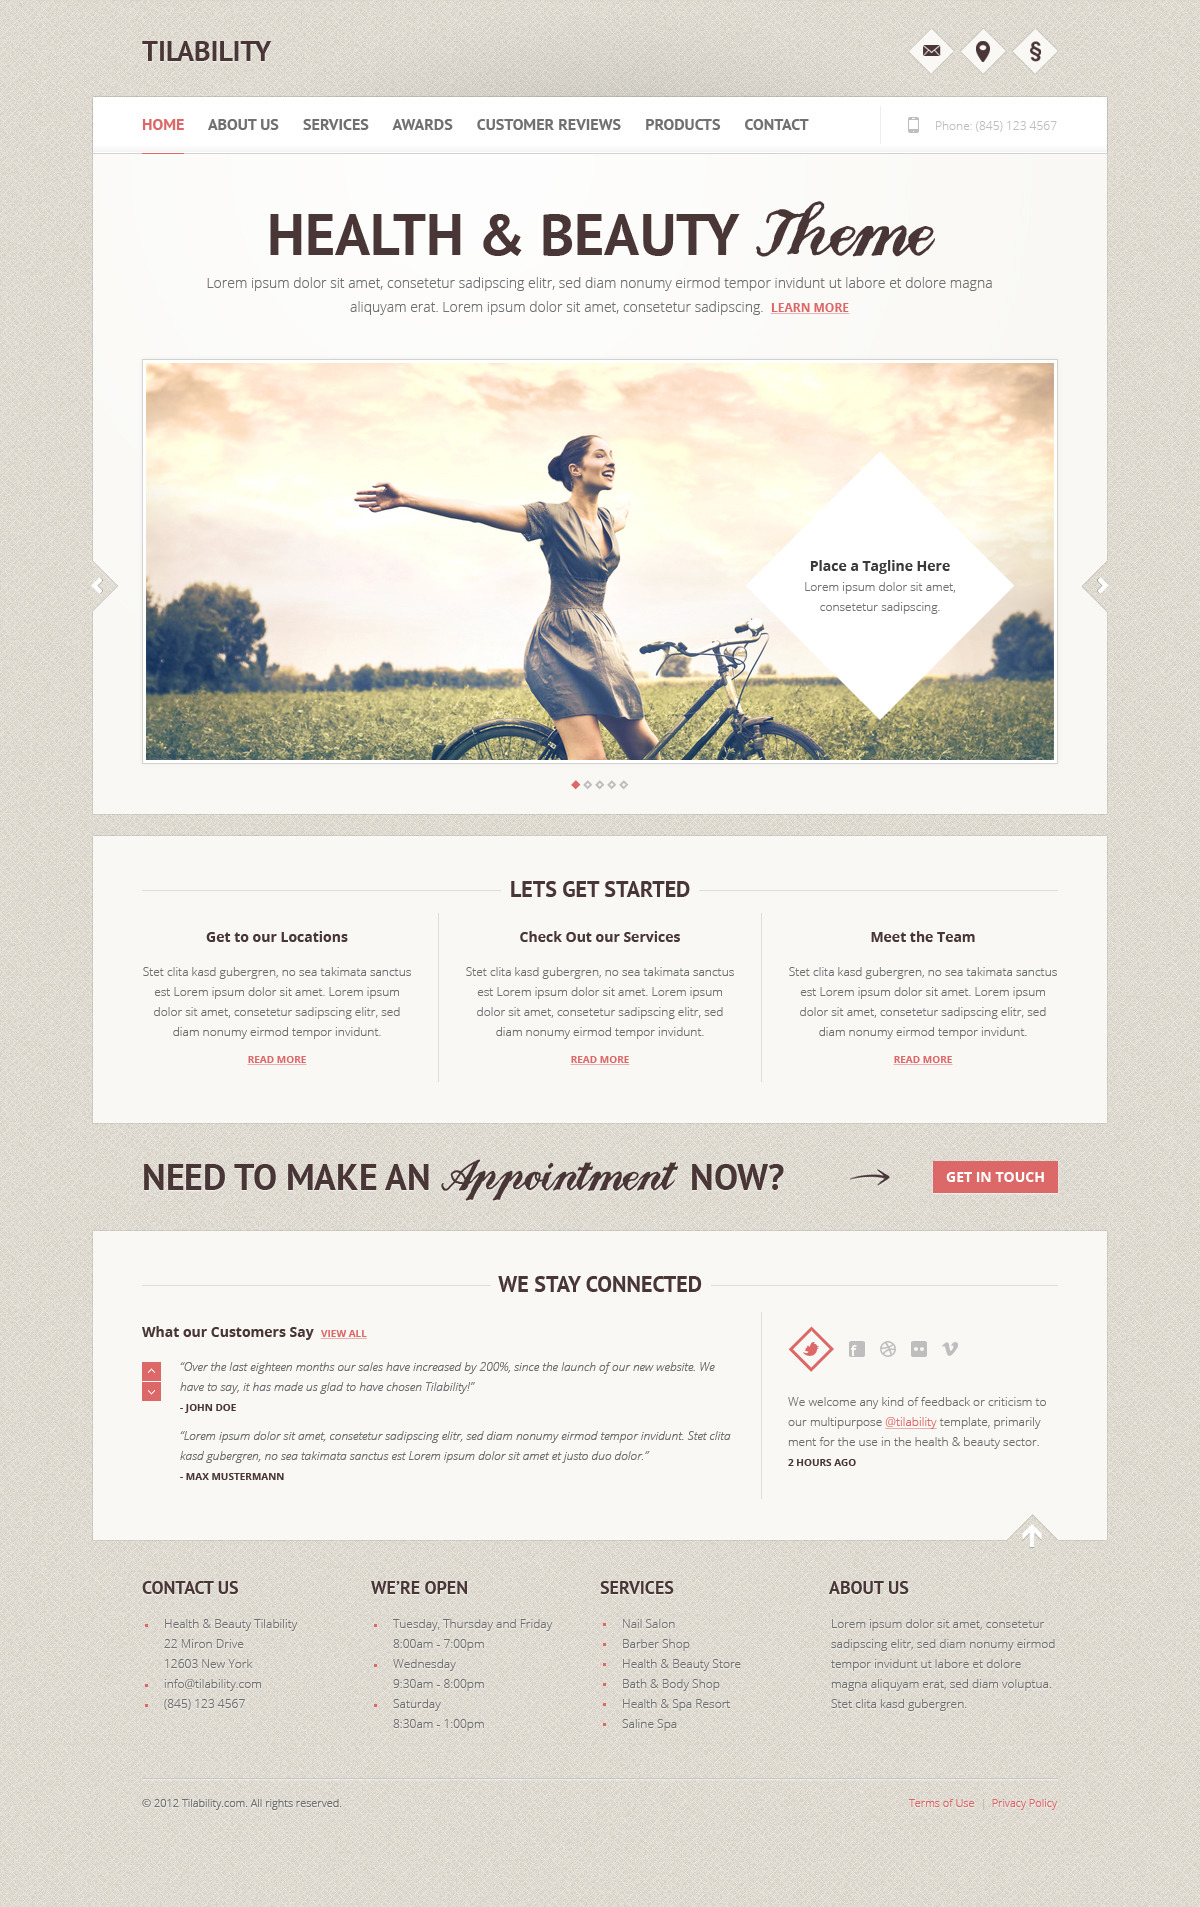 Tilability Health &amp; Beauty xHTML/CSS Template